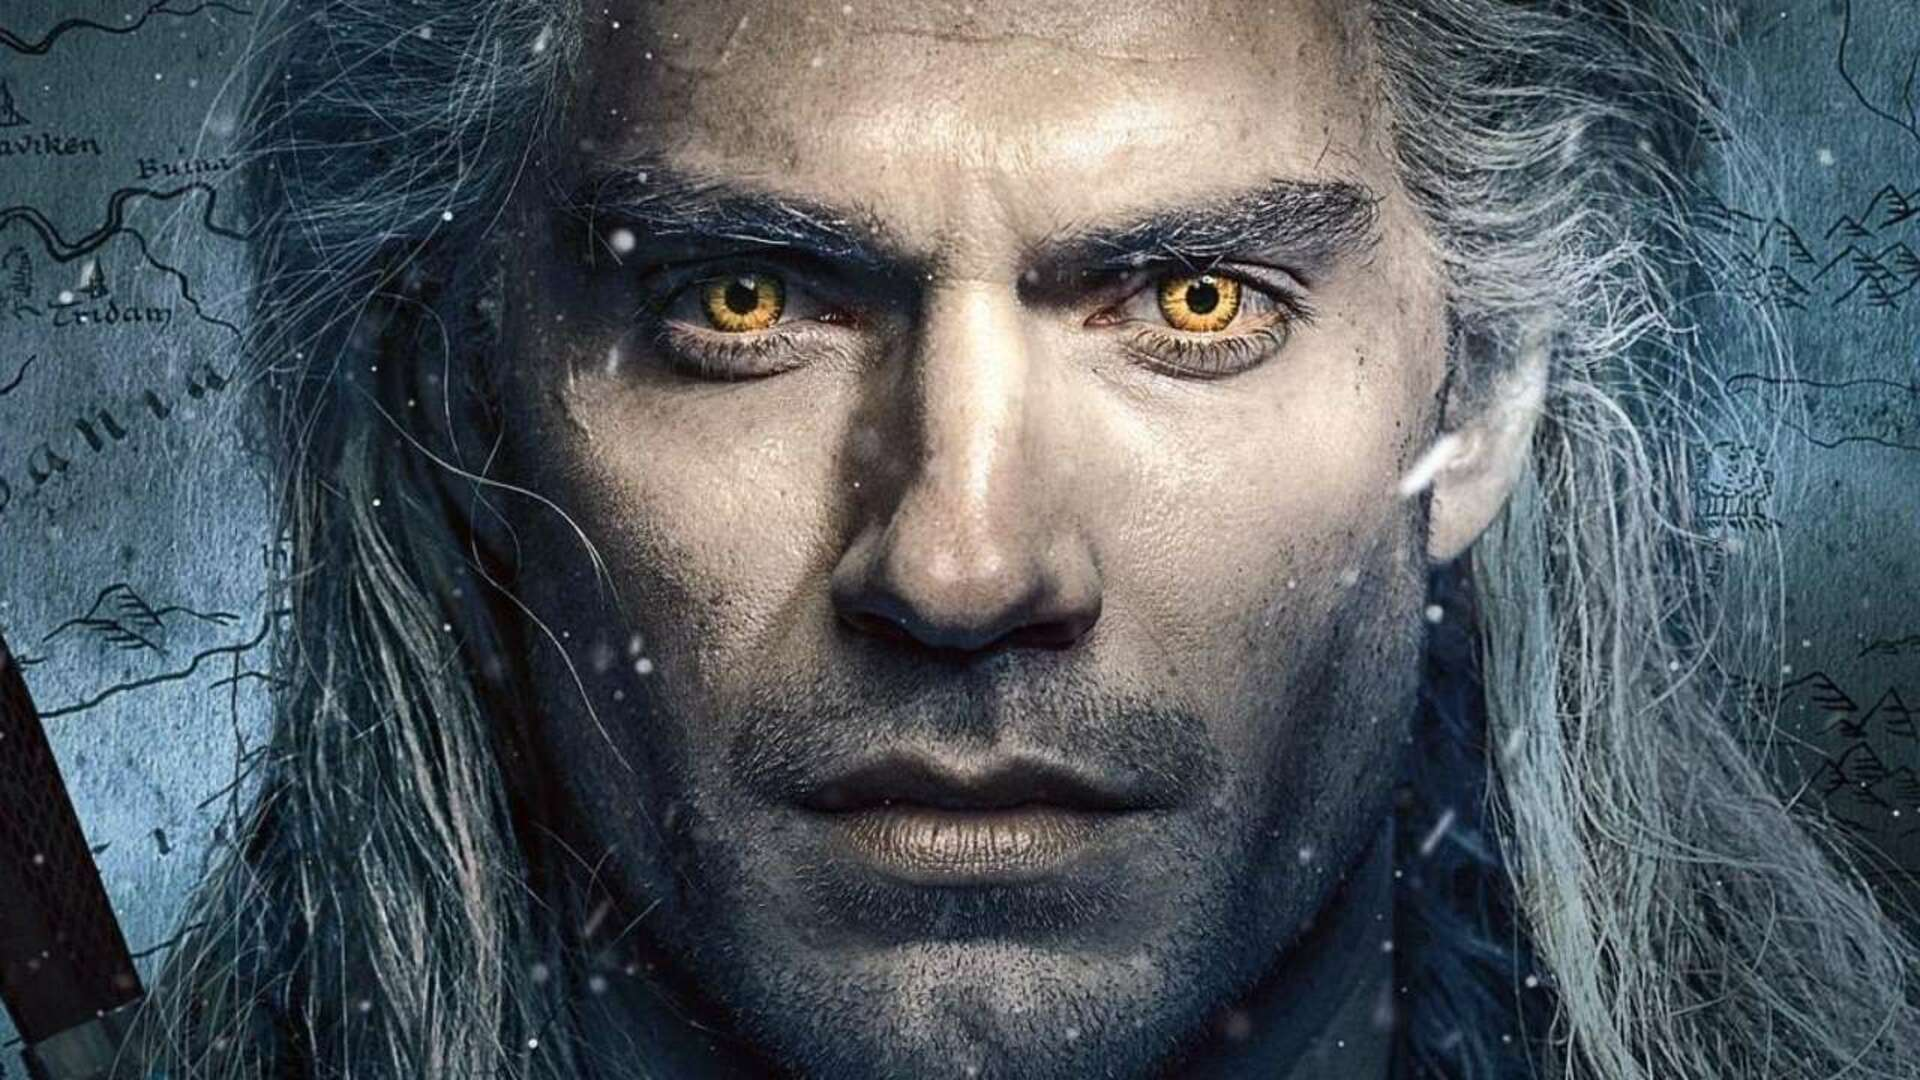 76 Million Households Watched Netflix's The Witcher for At Least Two Minutes